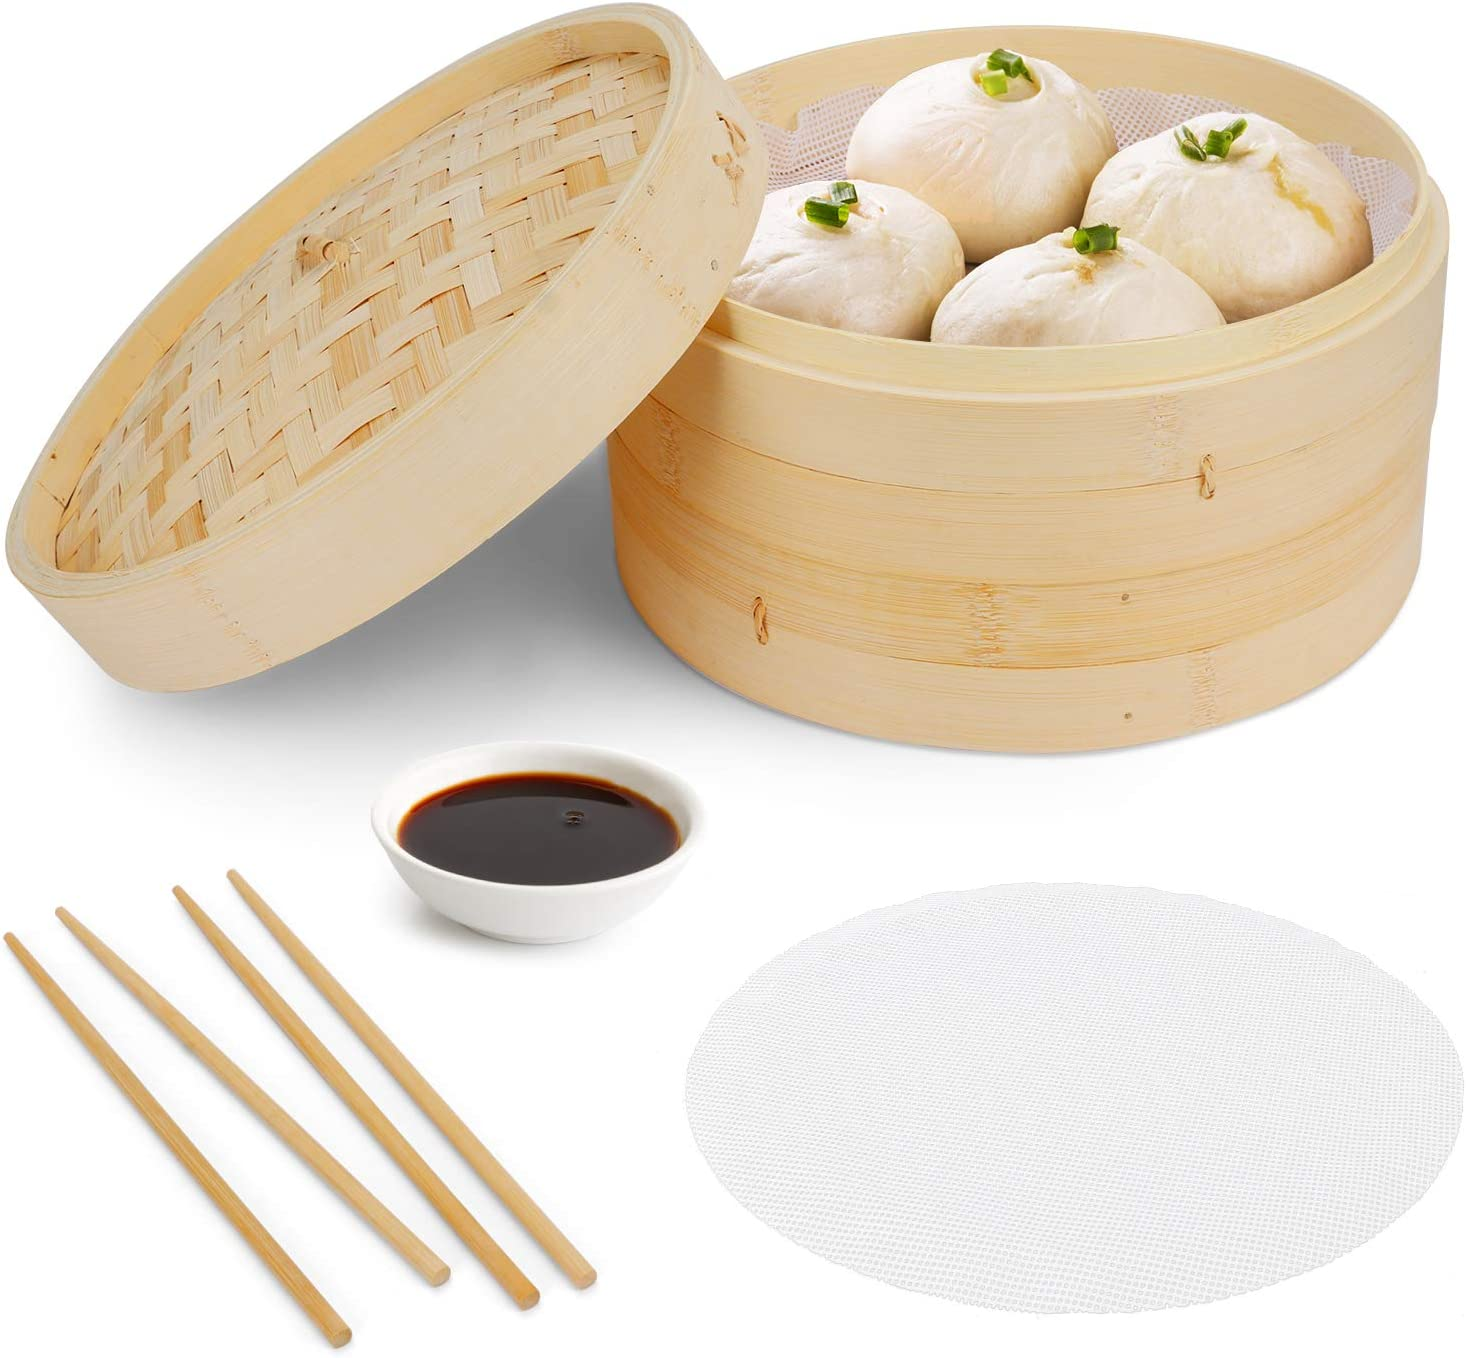 BestFire Bamboo Steamer Basket, 10in Dim Sum Steamer Instant Pot Accessories with 2 Silicone Cooking Mats and 2 pairs of Chopsticks for Rice, Dumplings, Vegetables, Meat and Fish